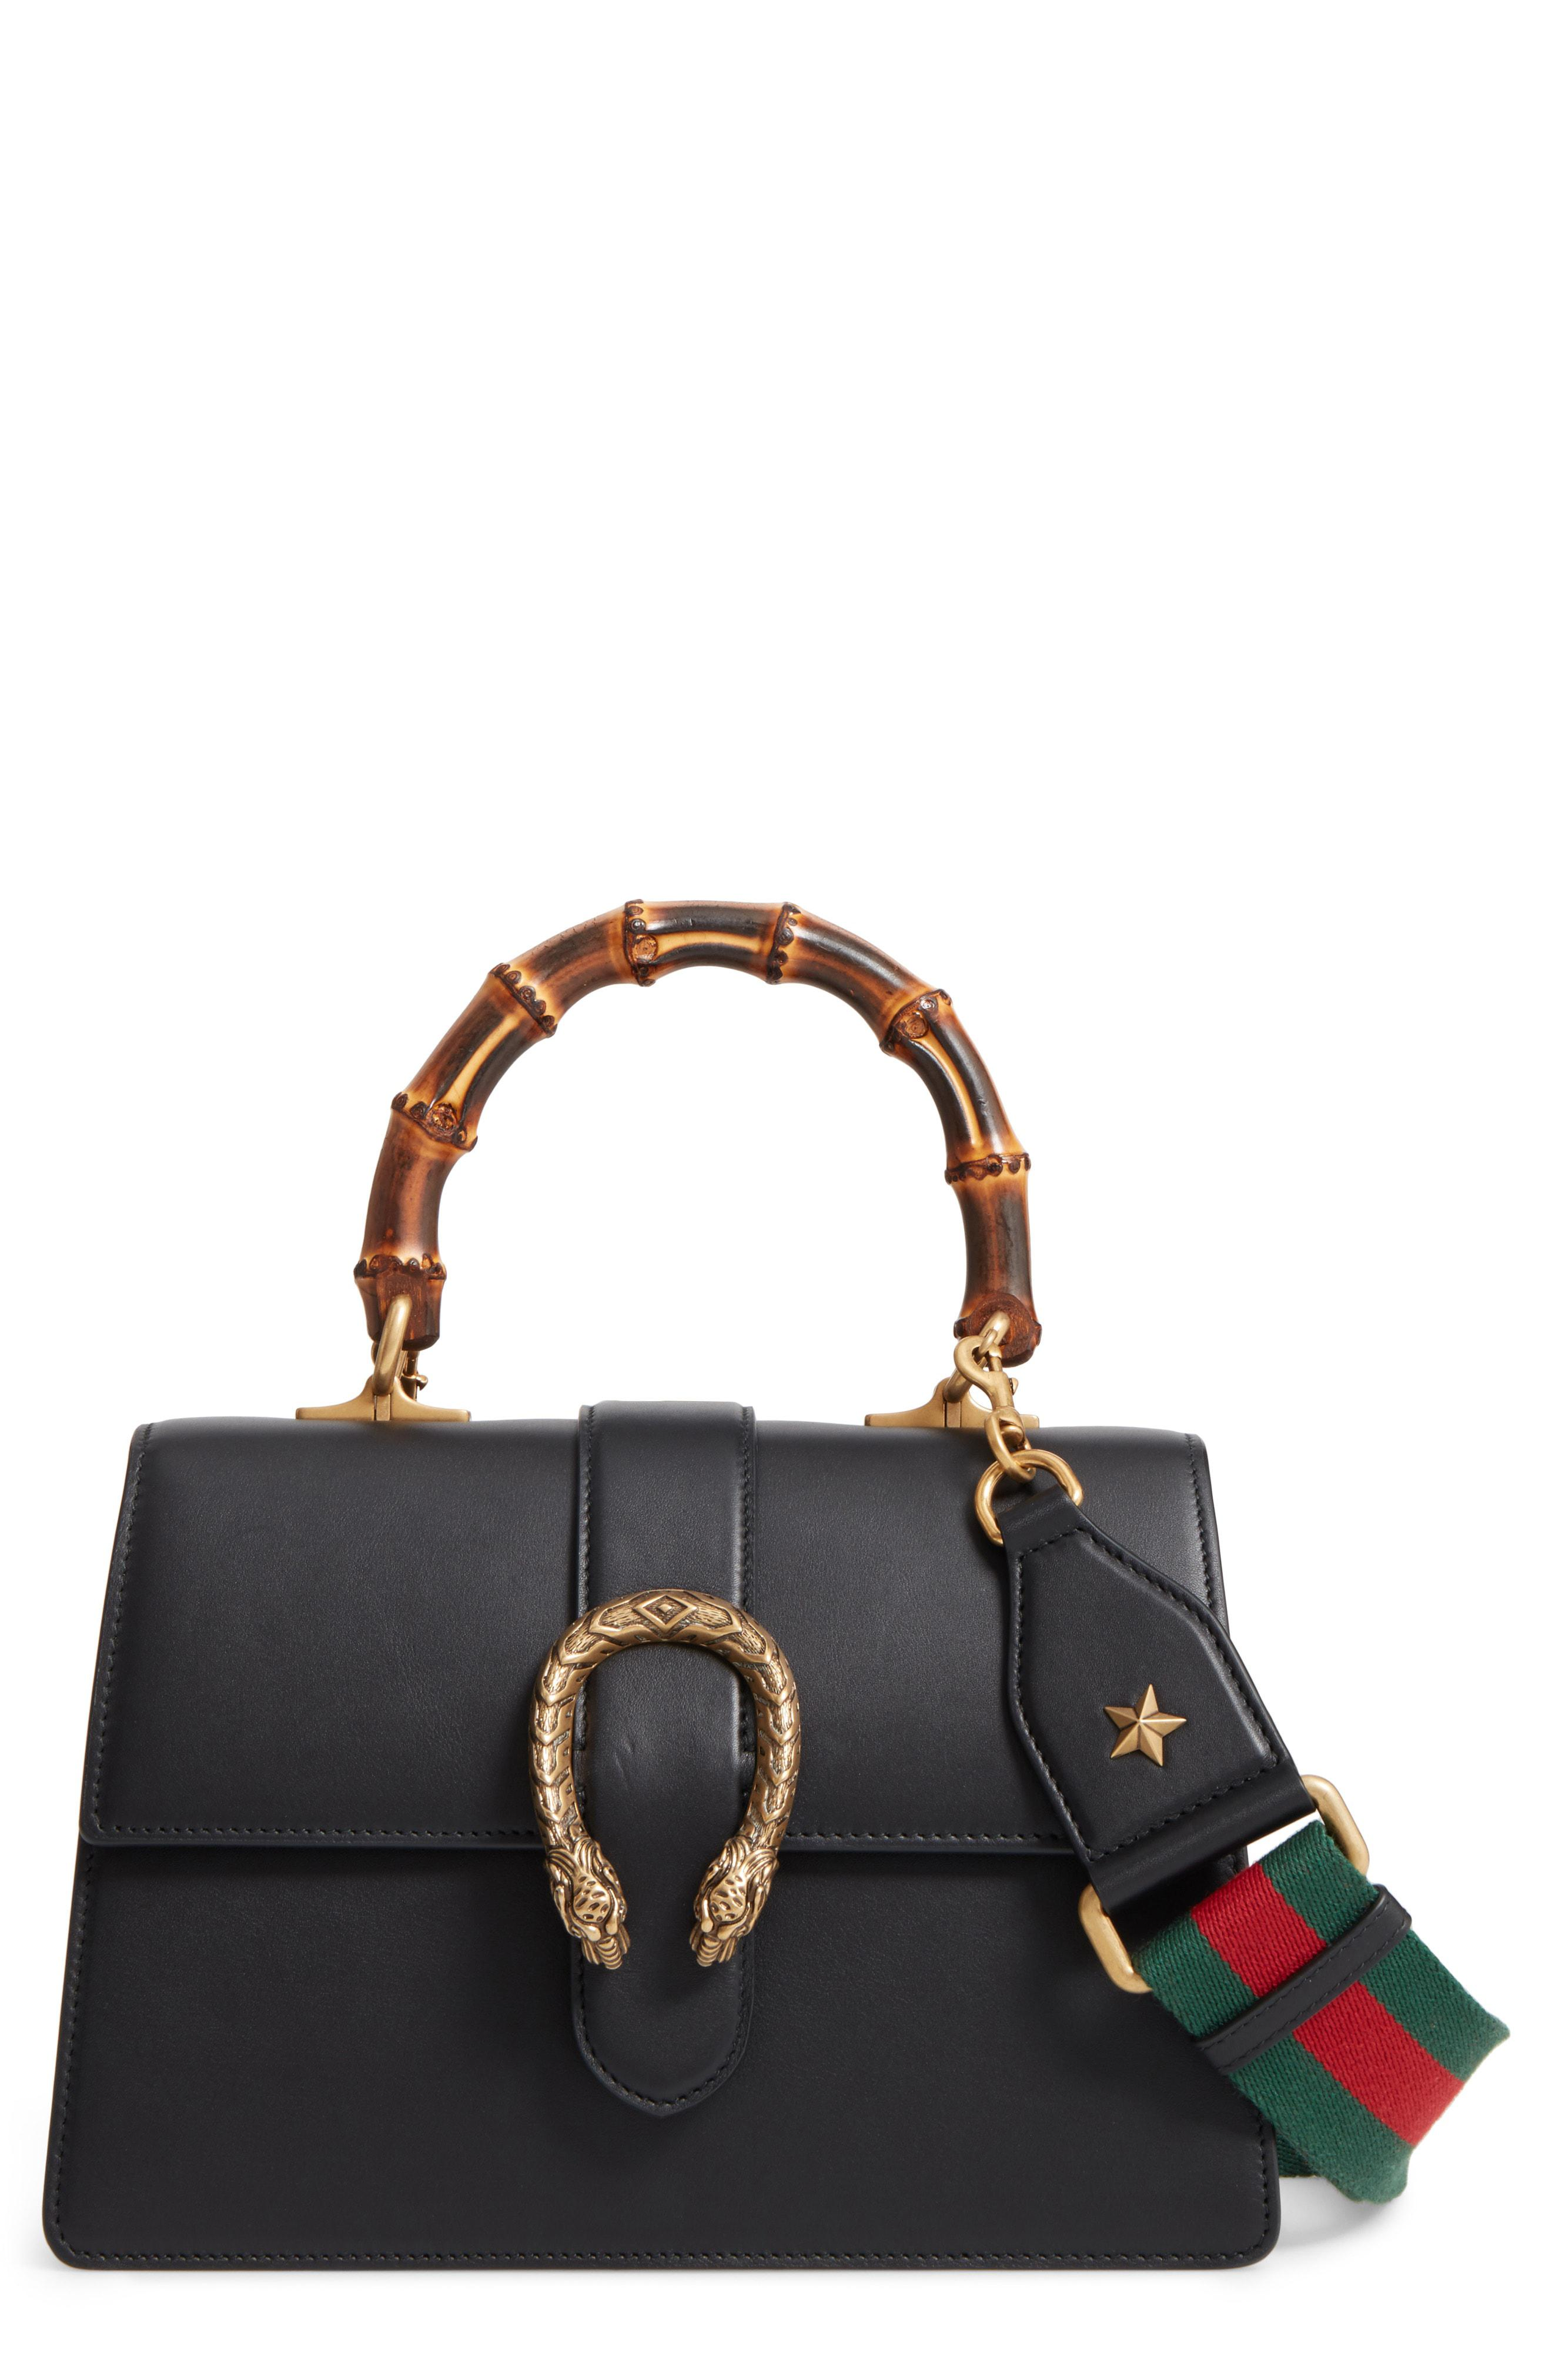 e4ae9670aa7 Lyst - Gucci Large Dionysus Top Handle Leather Shoulder Bag in Black